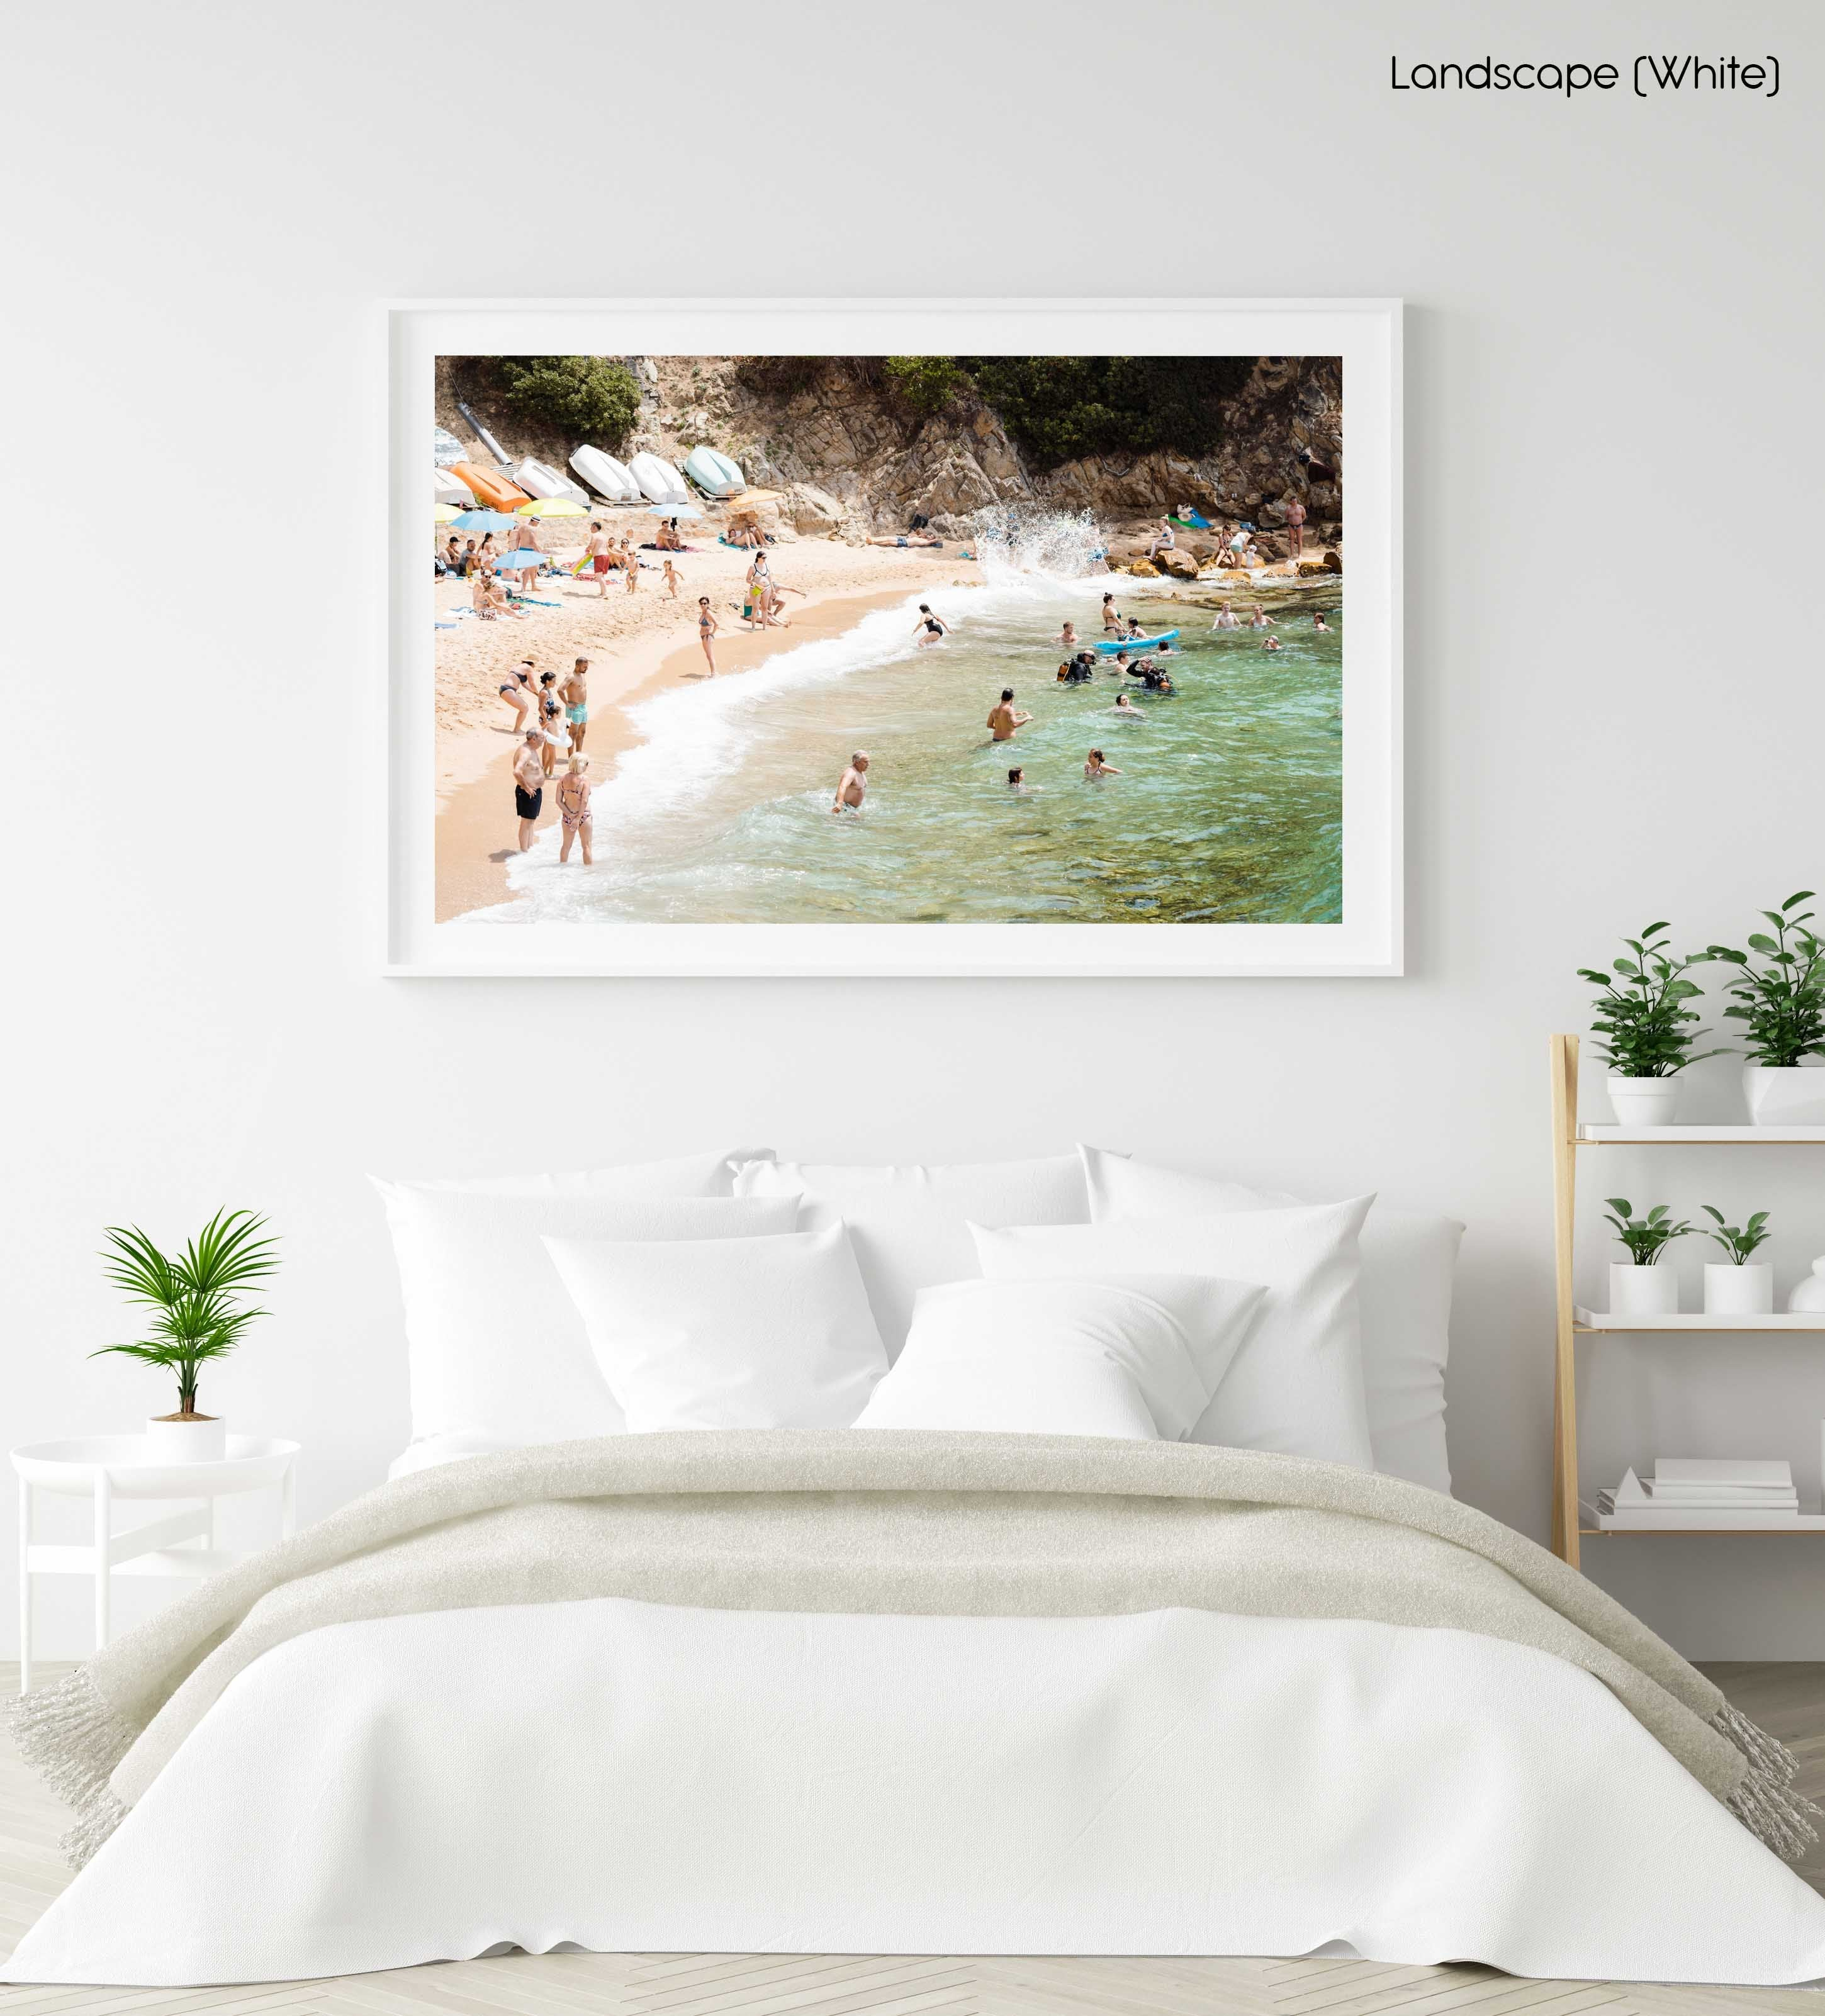 Swimmers, divers and people lying at beach with green water and colorful boats in a white fine art frame